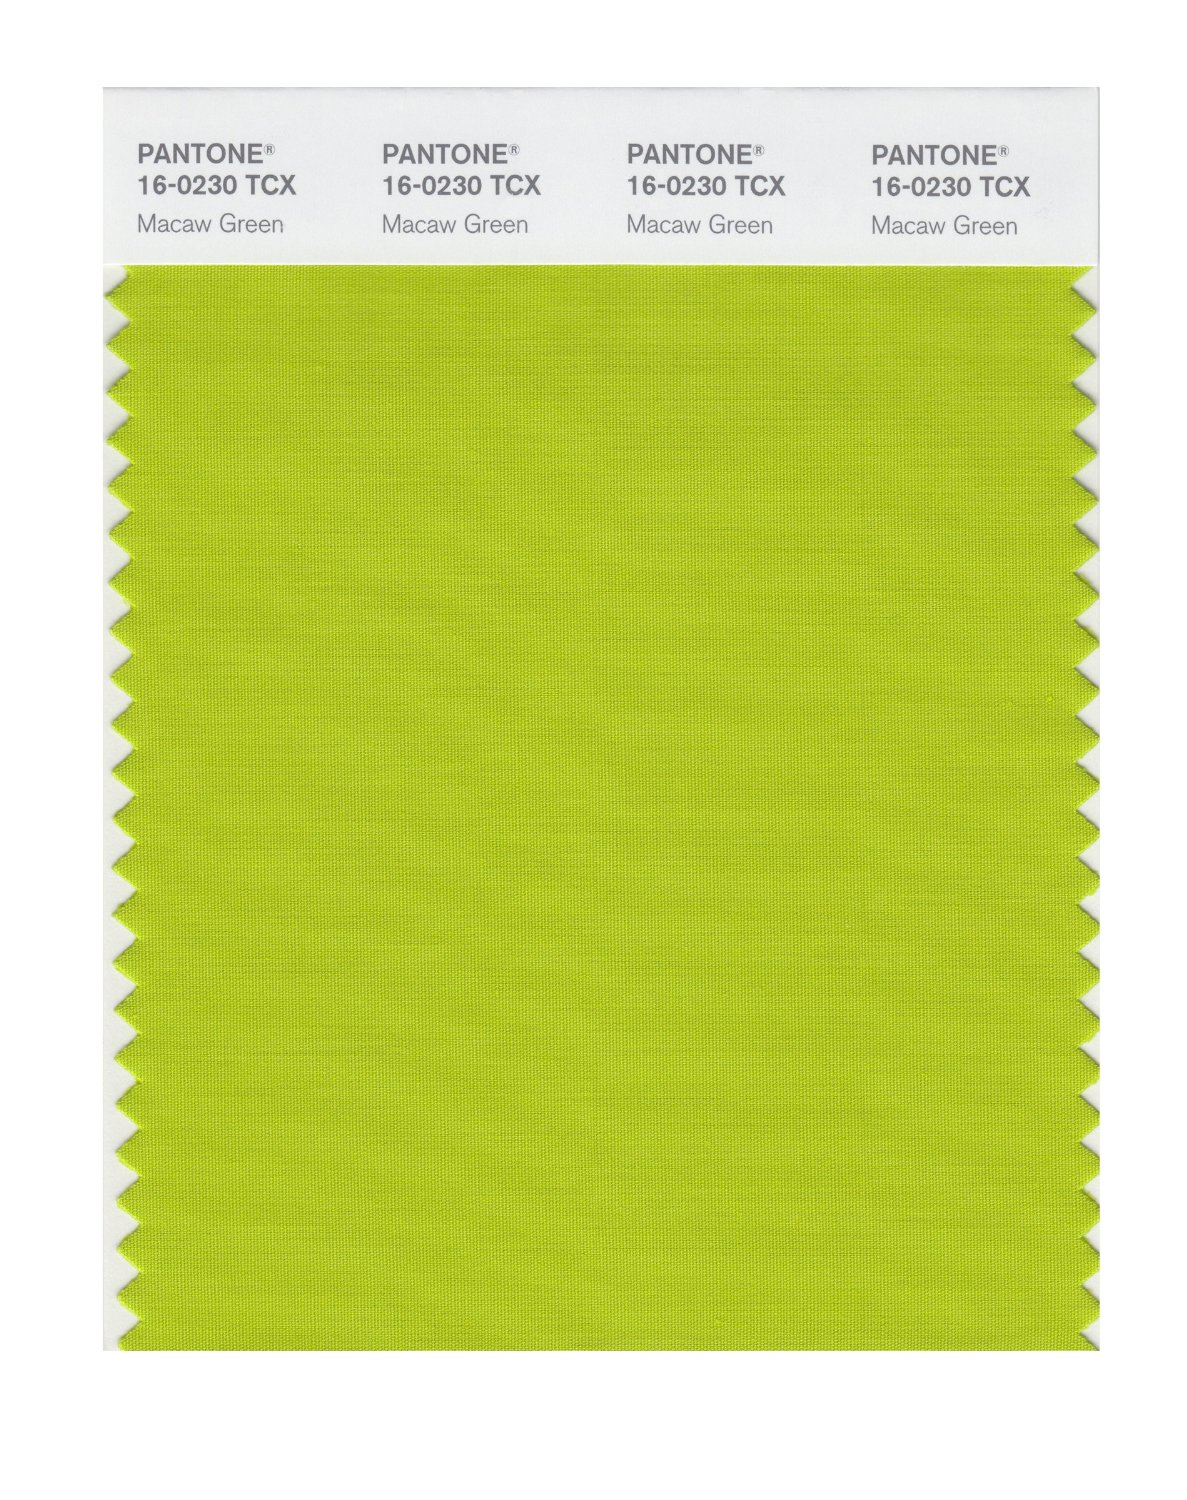 Pantone Smart Swatch 16-0230 Macaw Green